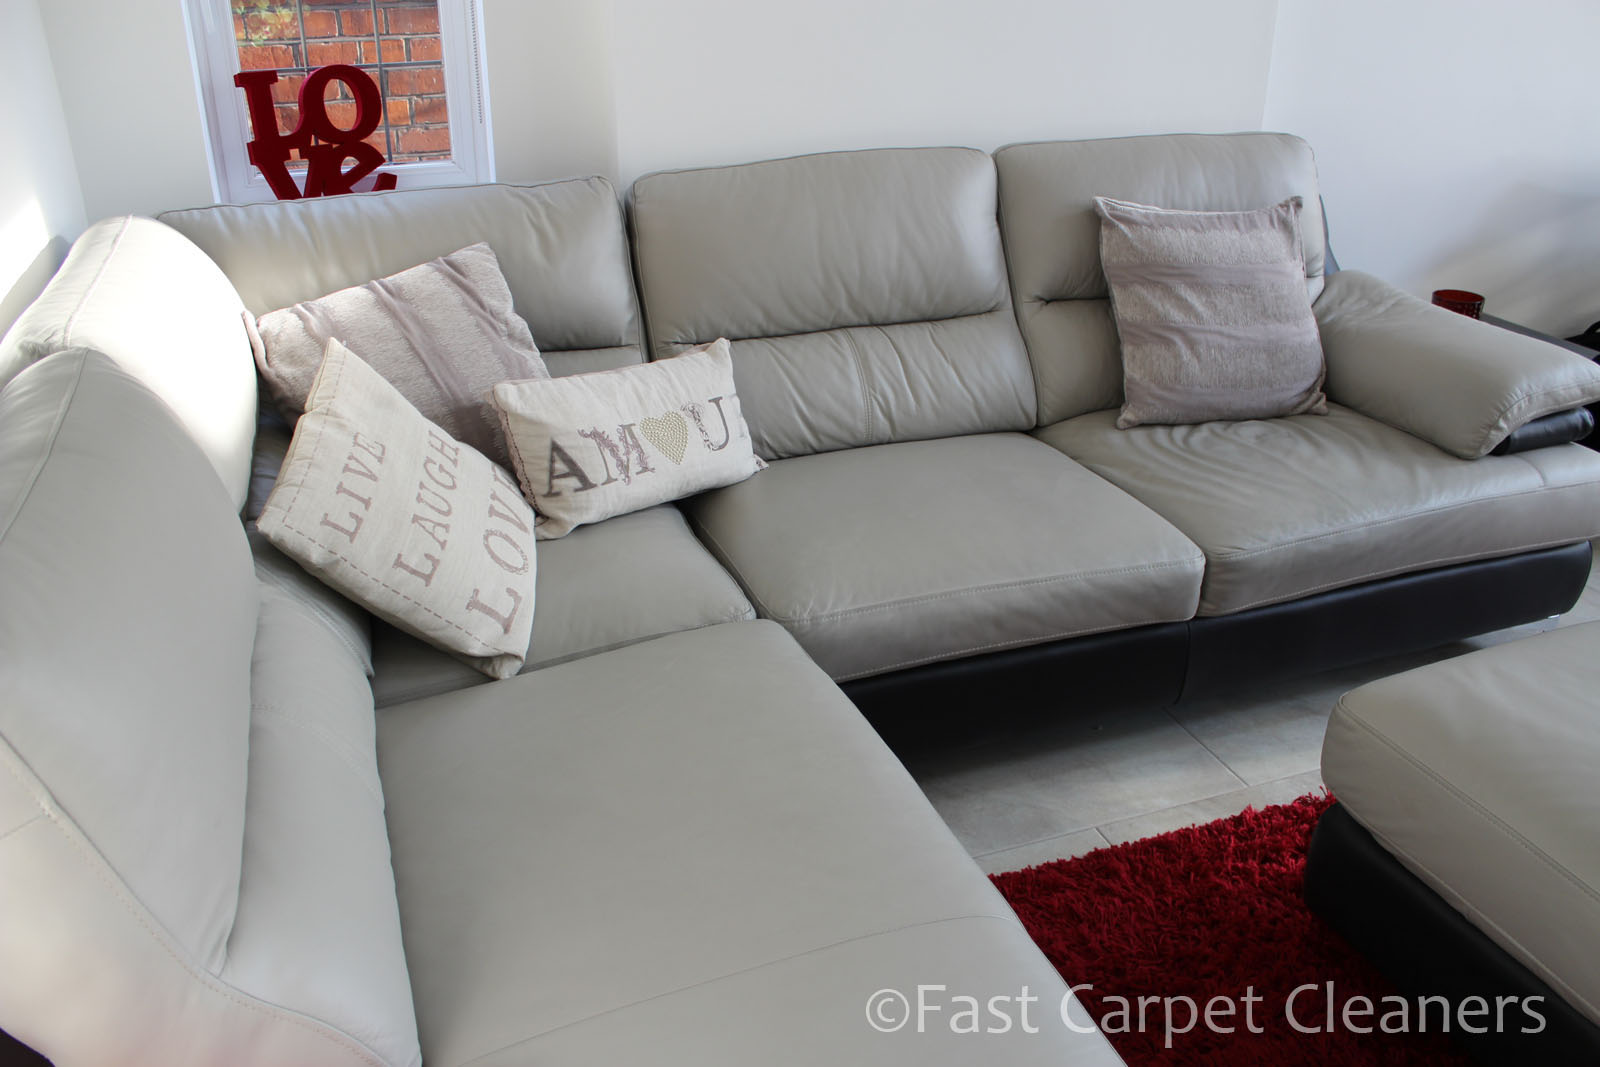 Upholstery Cleaning Leeds